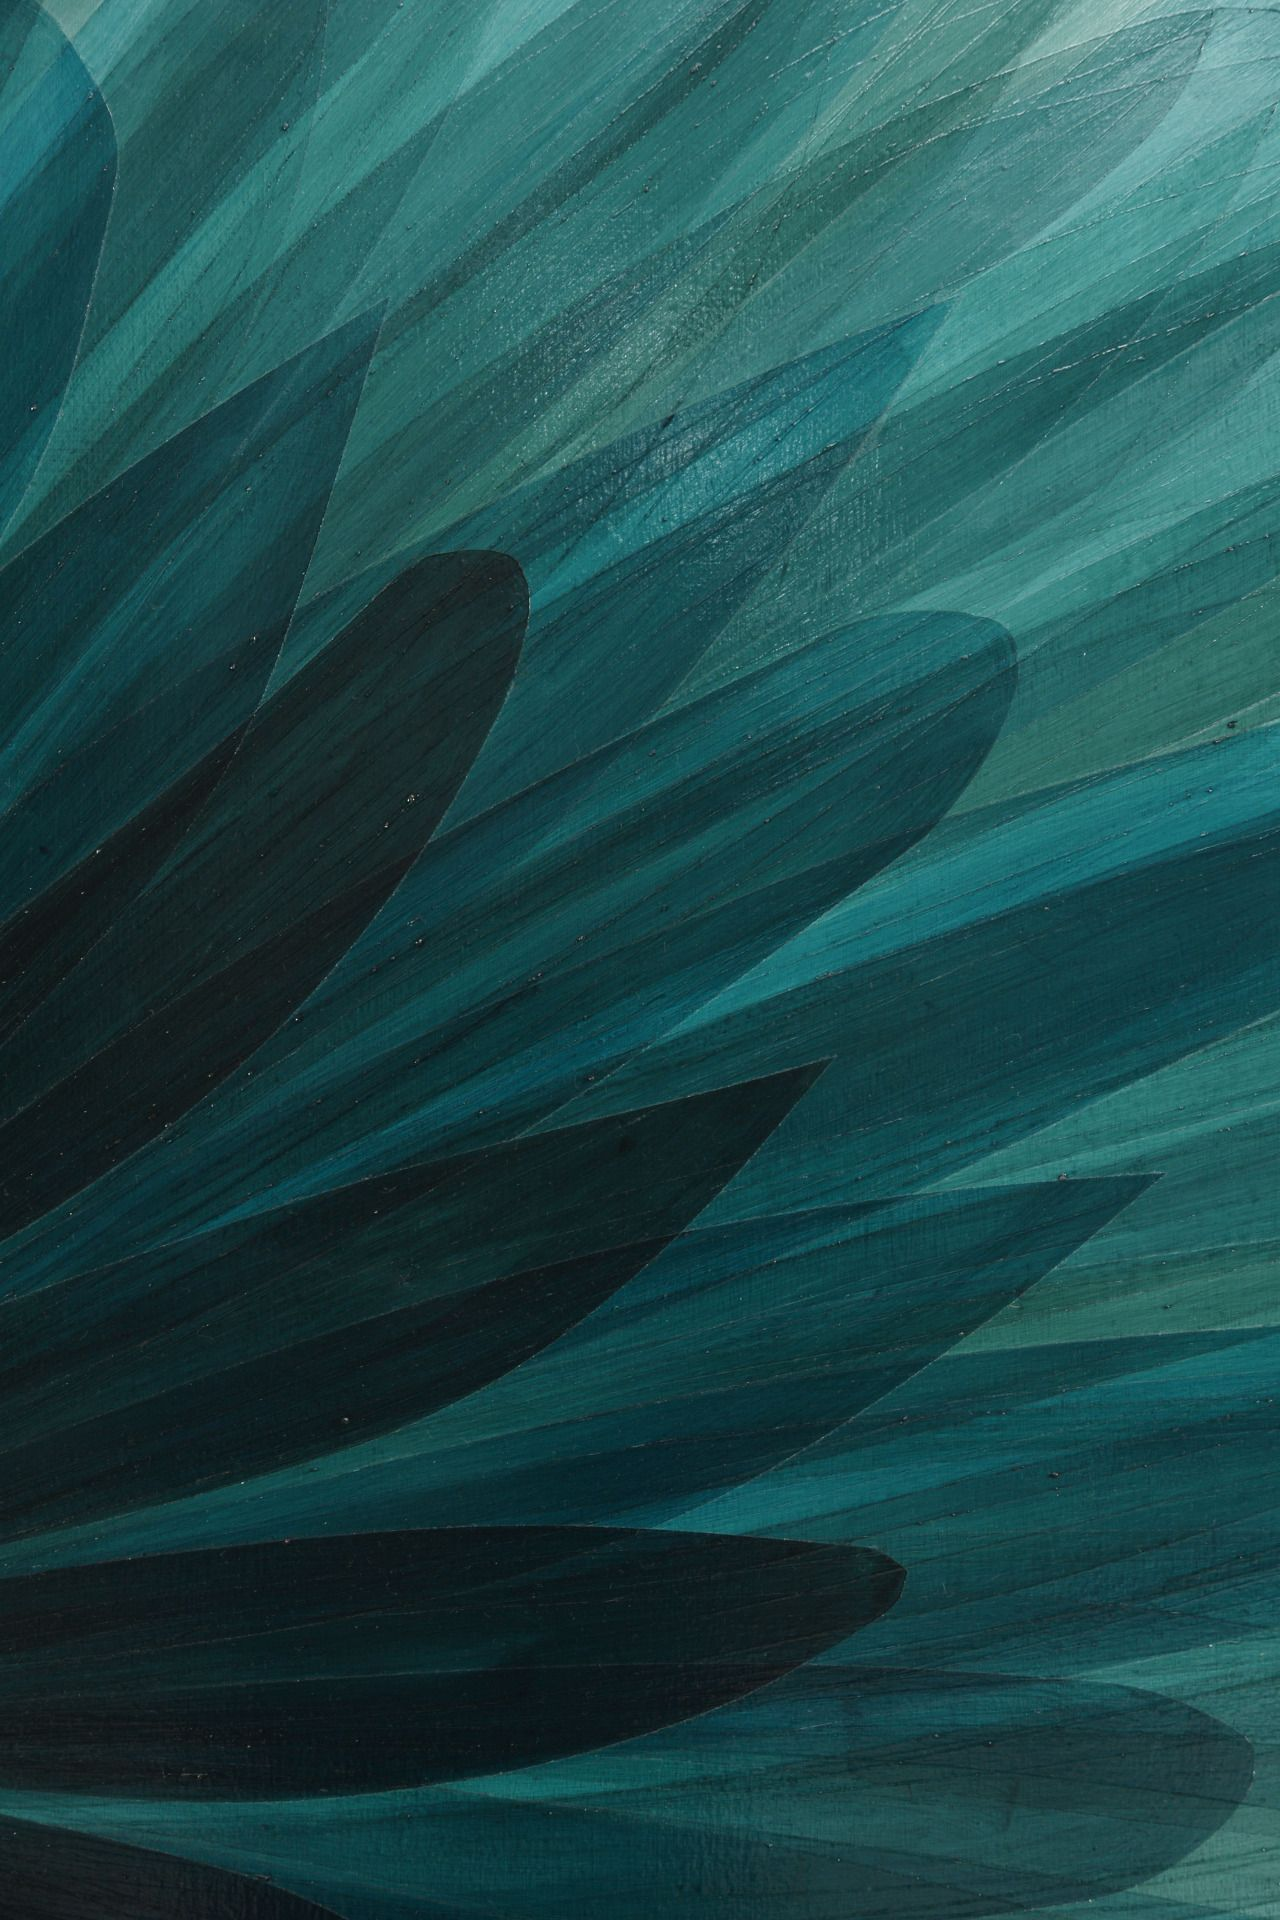 teal; Andre Ermolaev; pinned 11/3/15 My Pin of the Day